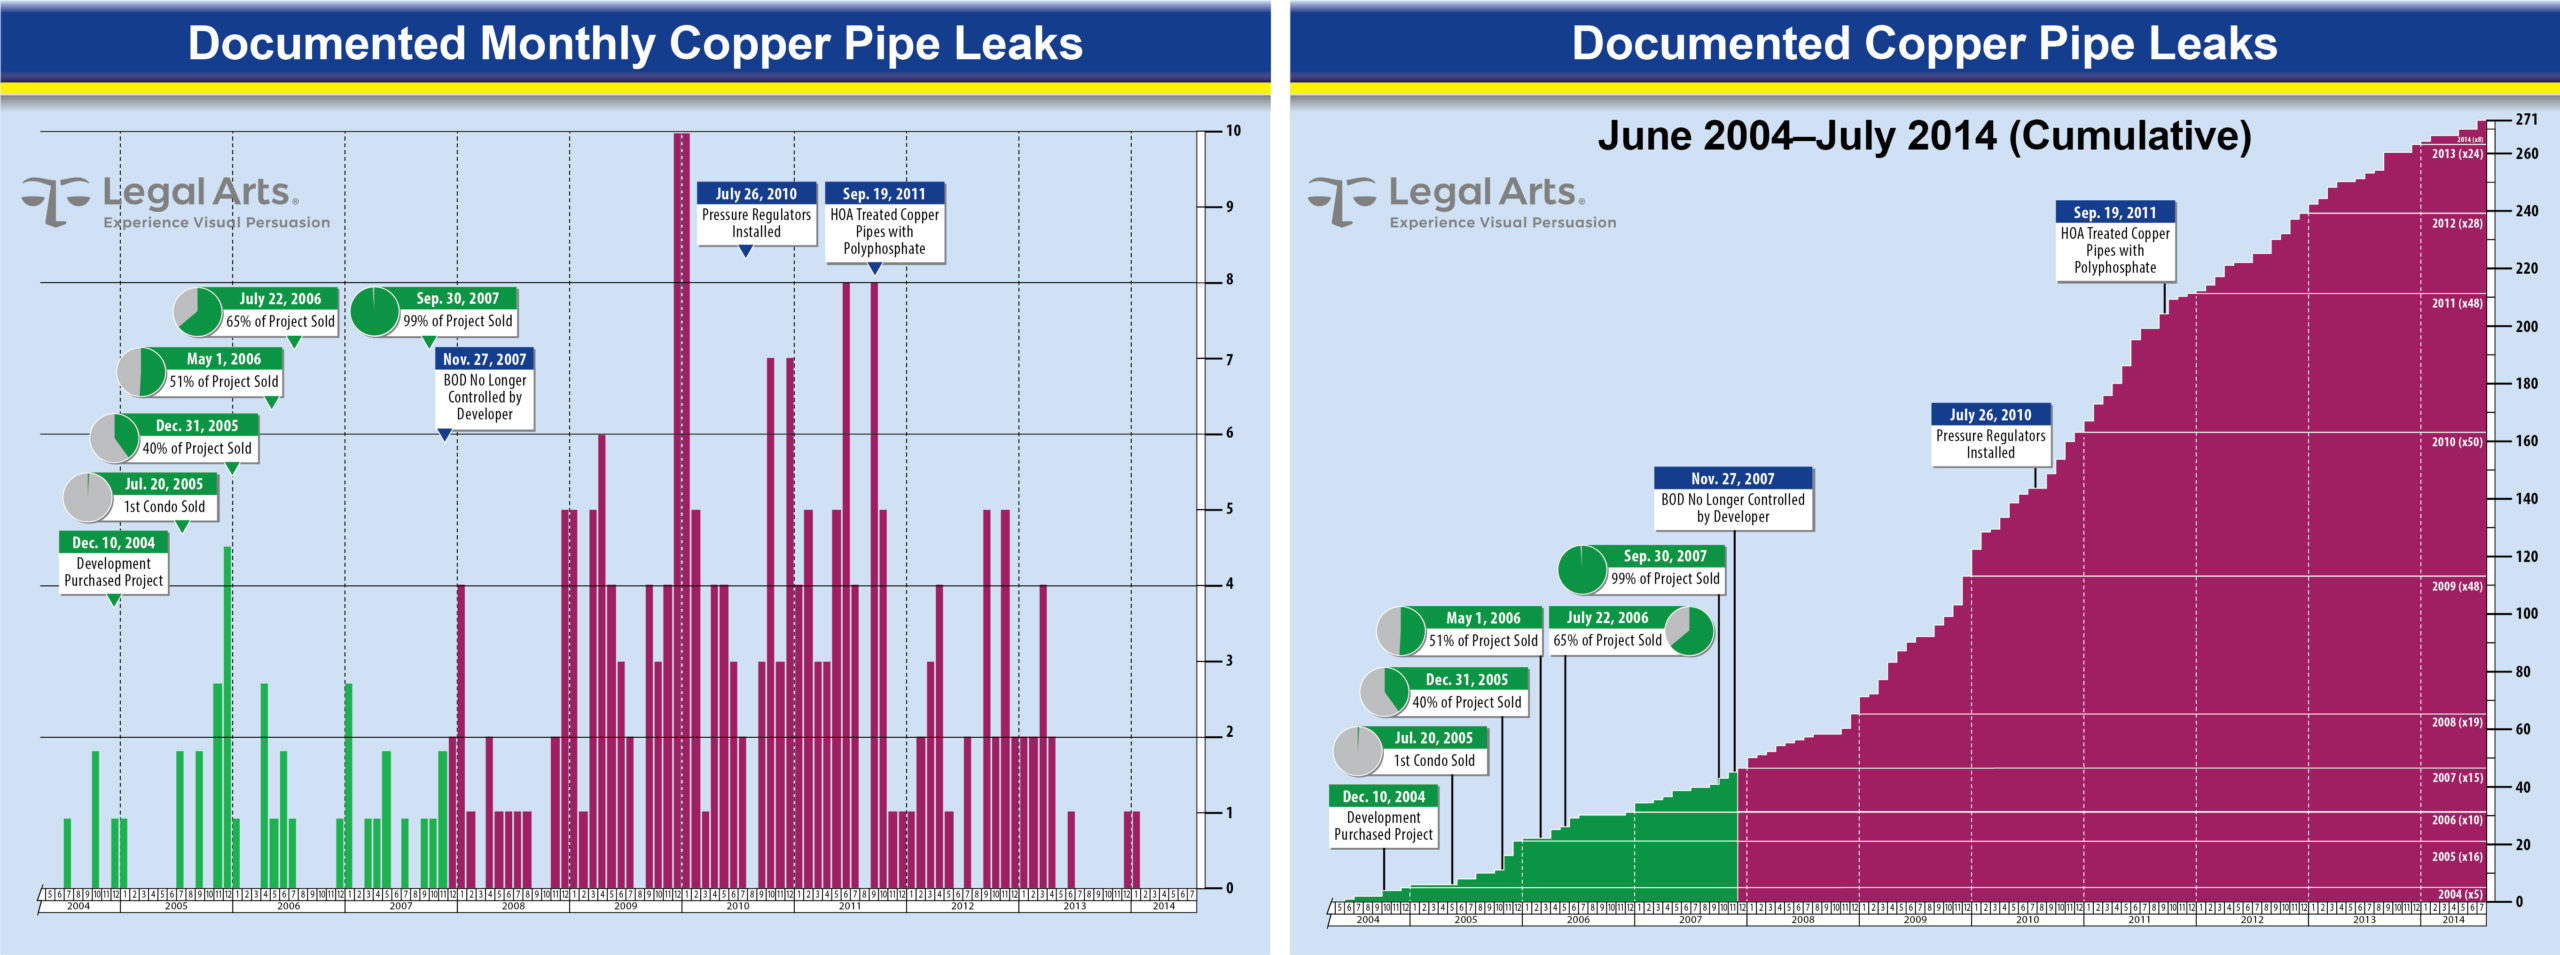 The impact of evidence can be influenced significantly by your data visualization choice. The monthly-data presentation on left demonstrates diminishing occurrences that might convey leak problems were mostly resolved (a strong defense position). The cumulative data presentation on right emphasizes the volume of experiences with no appreciable leveling off, a position promoted by the plaintiffs.